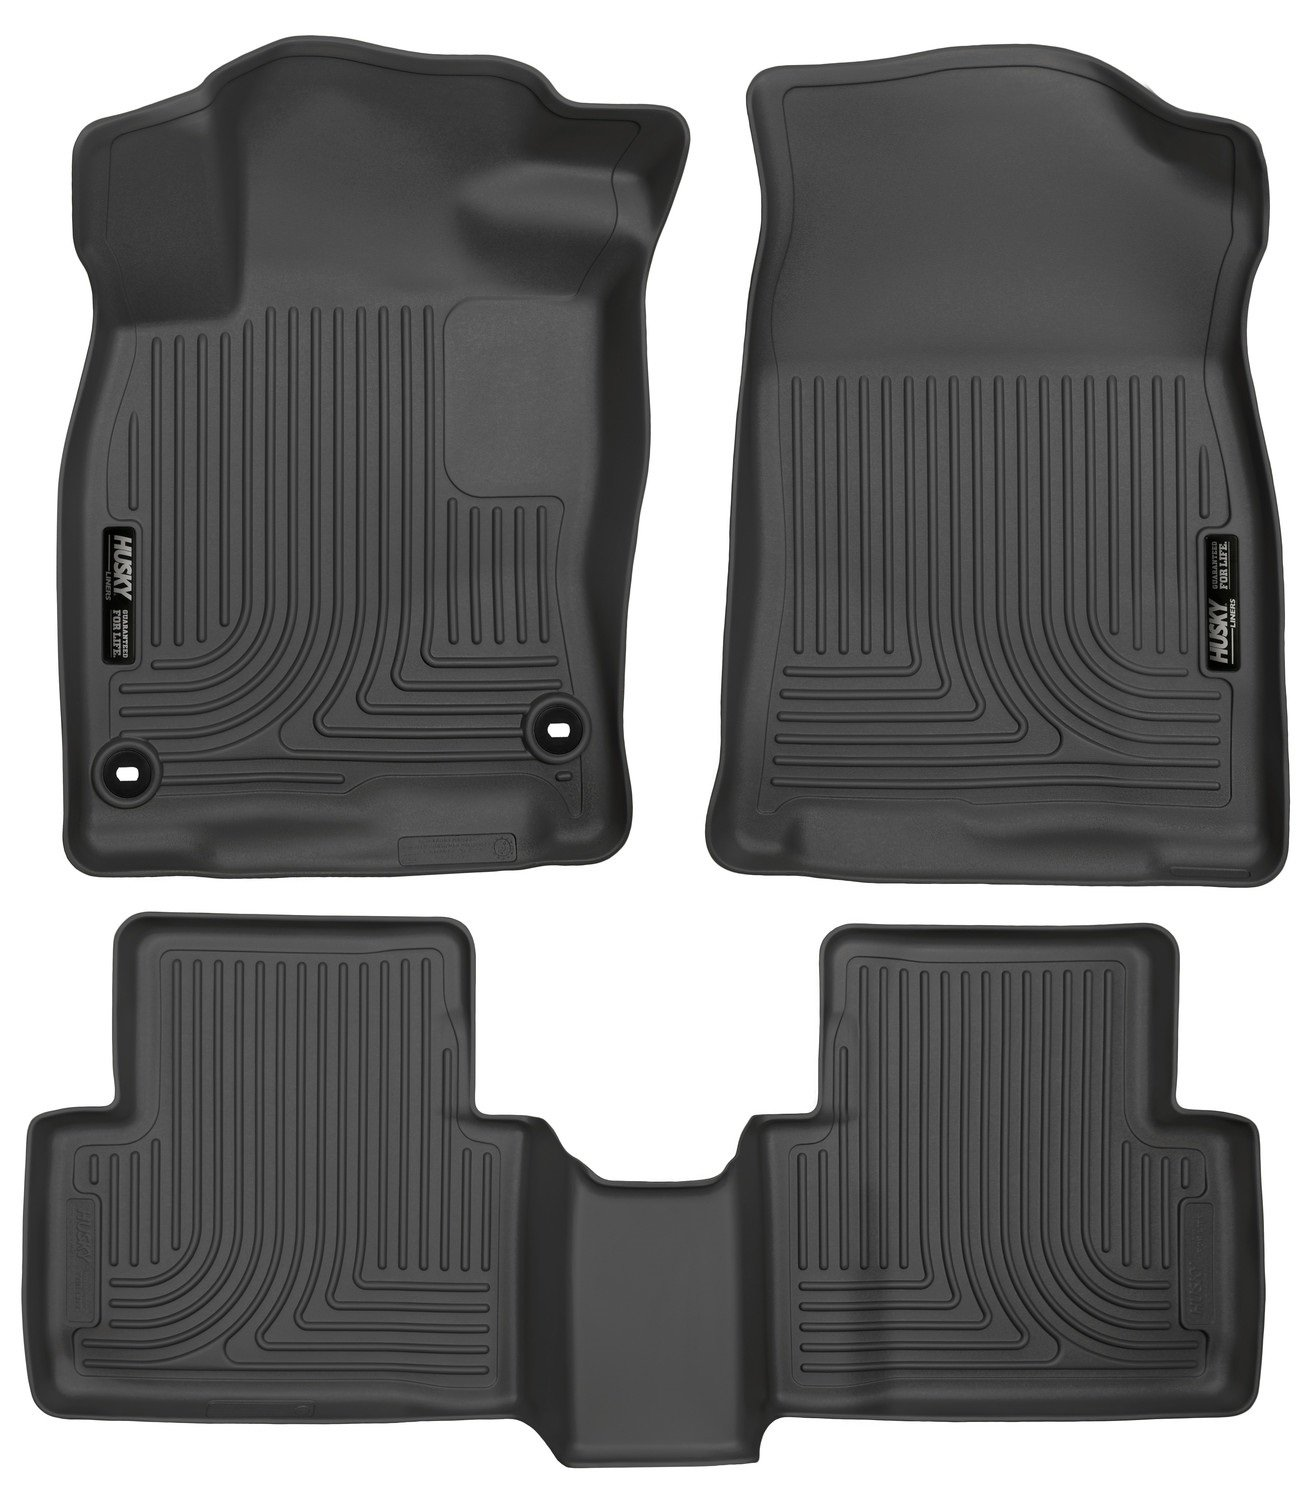 Husky Liners 98461 Black Weatherbeater Front & 2nd Seat Floor Liners Fits 2016-2019 Honda Civic Coupe/Sedan, 2017-2019 Honda Civic Hatchback by Husky Liners (Image #1)